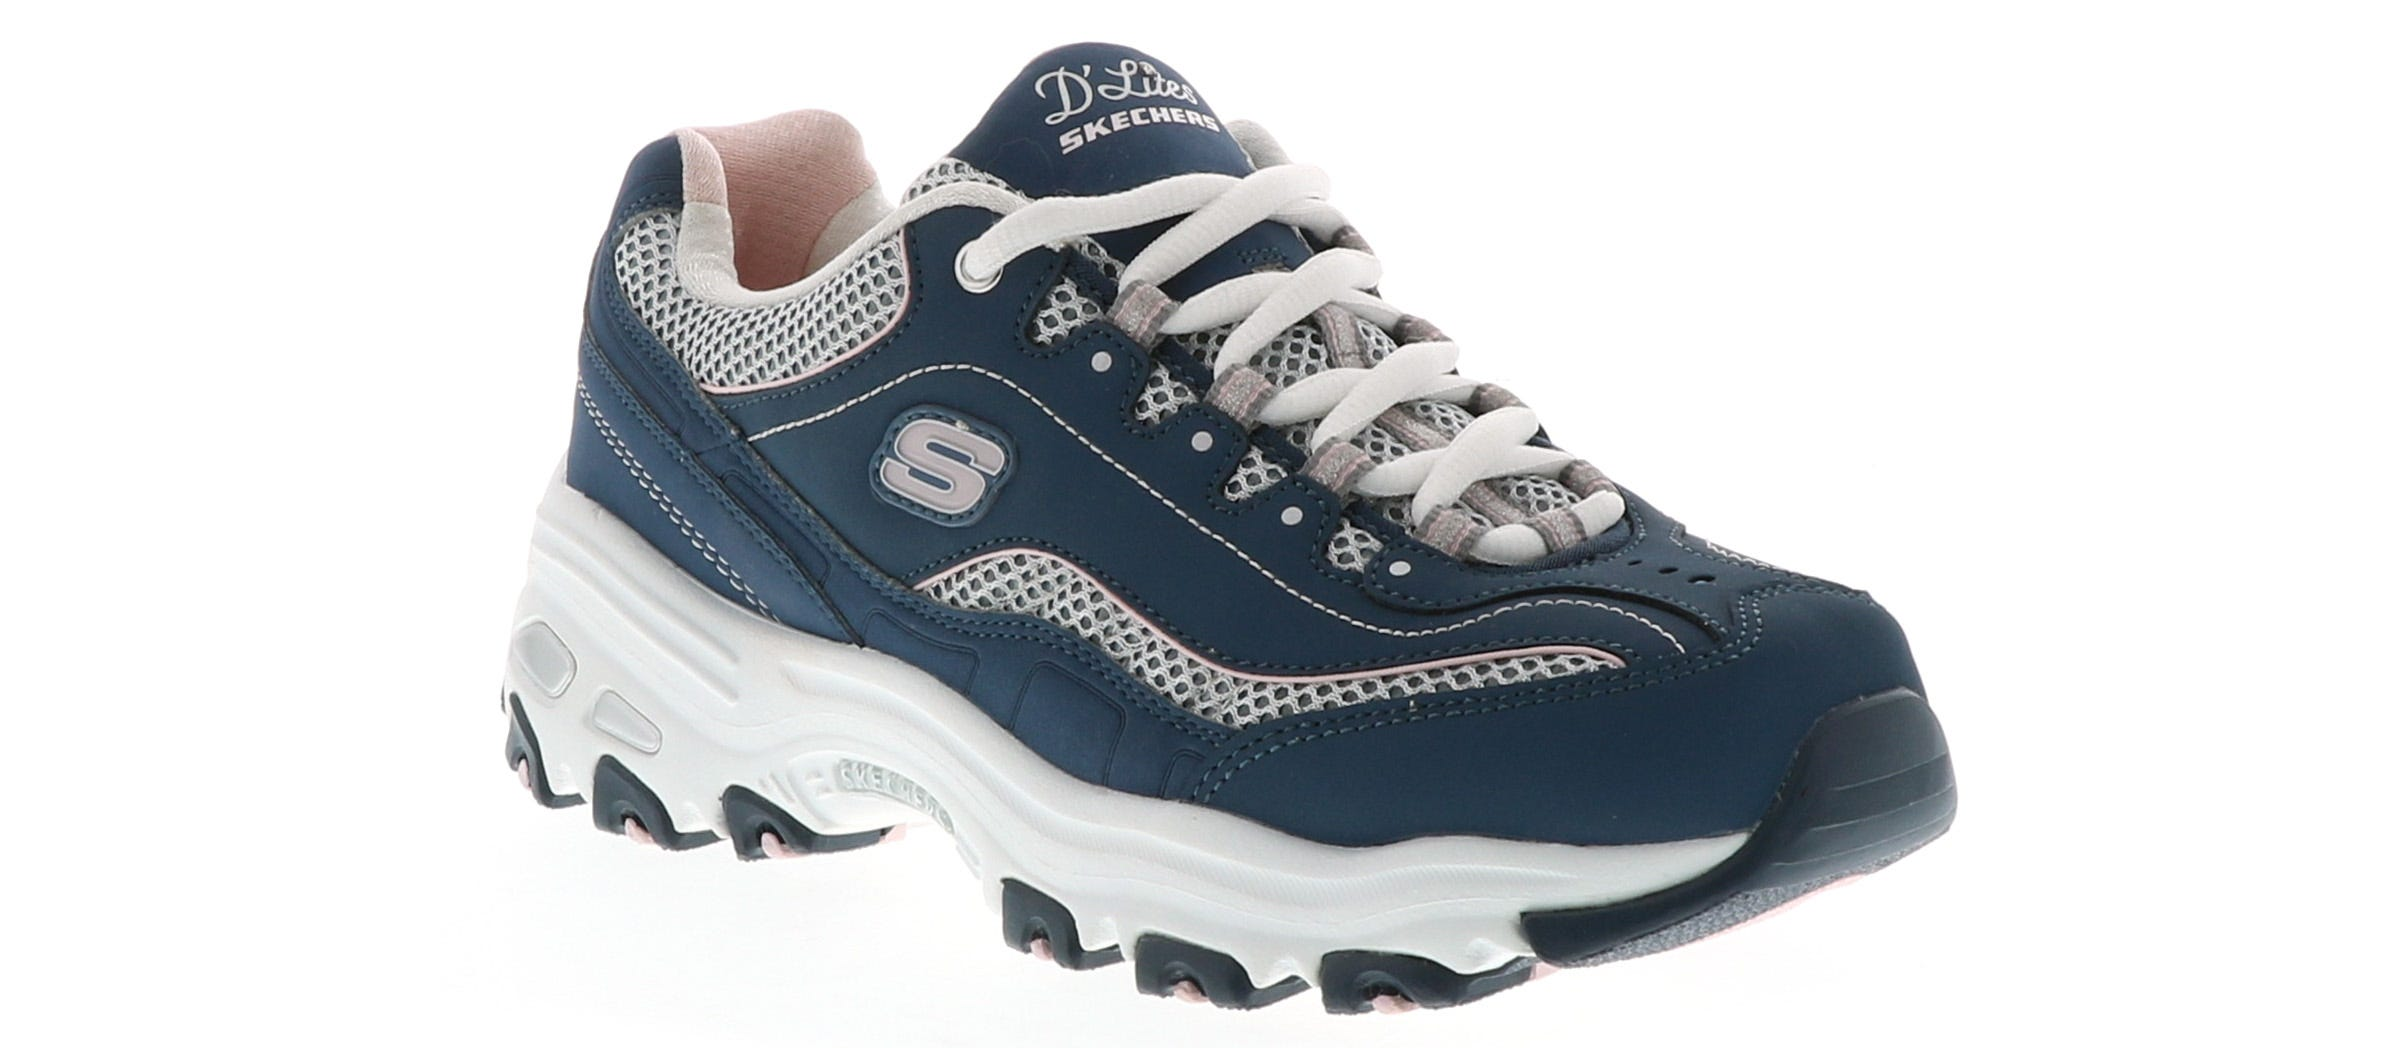 Women's Skechers D'Lites Life Saver